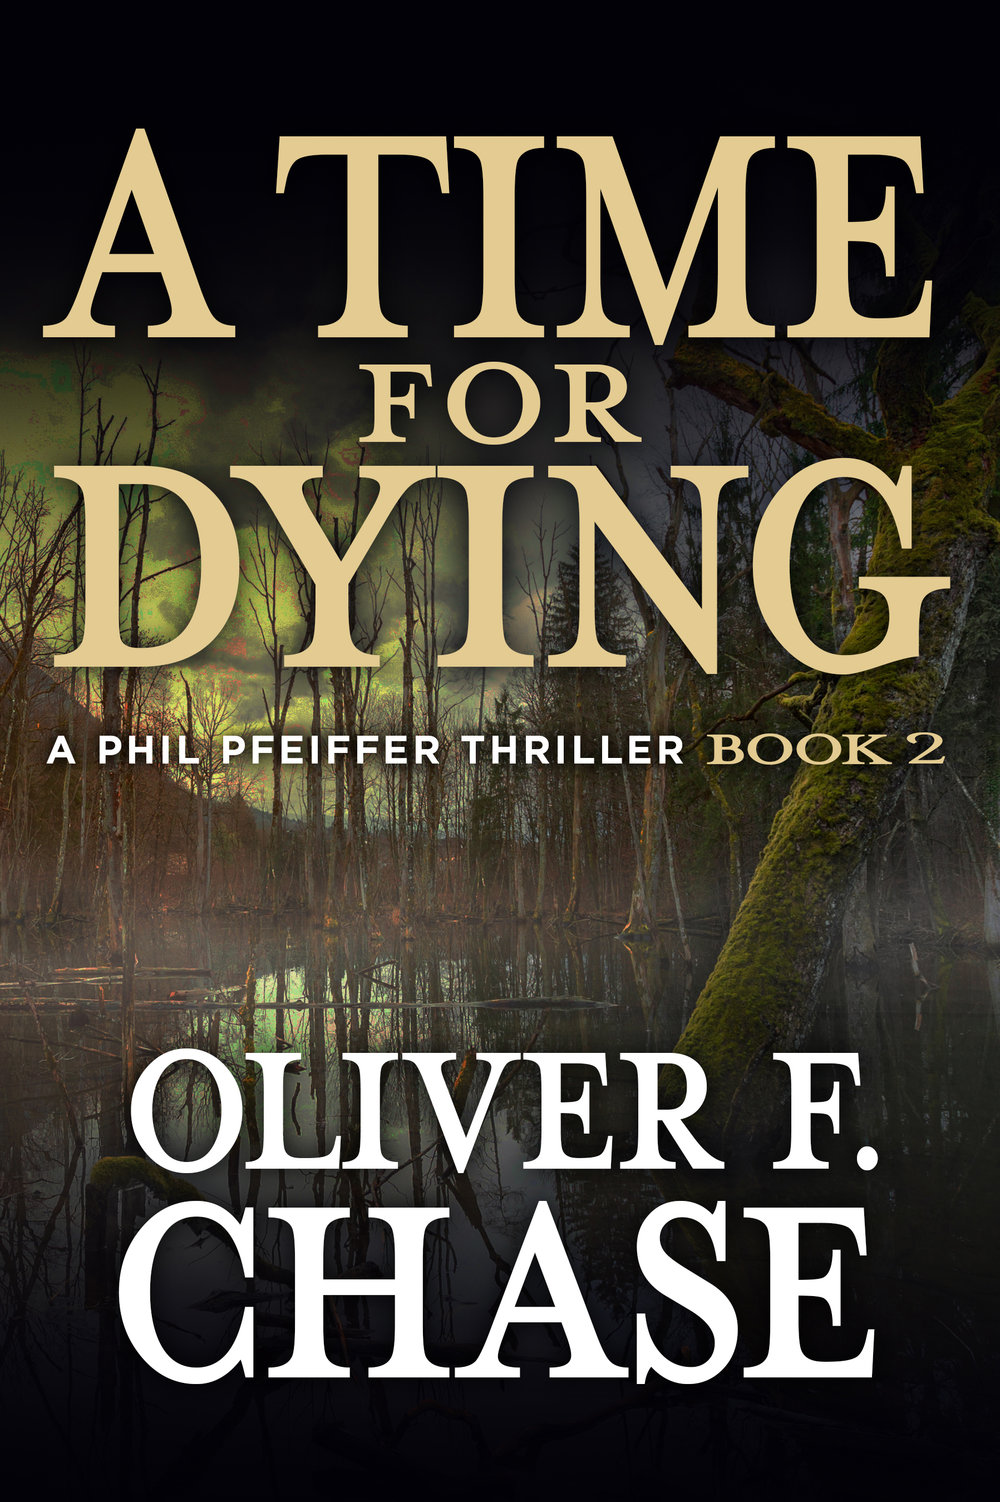 a time for dying (2).jpg